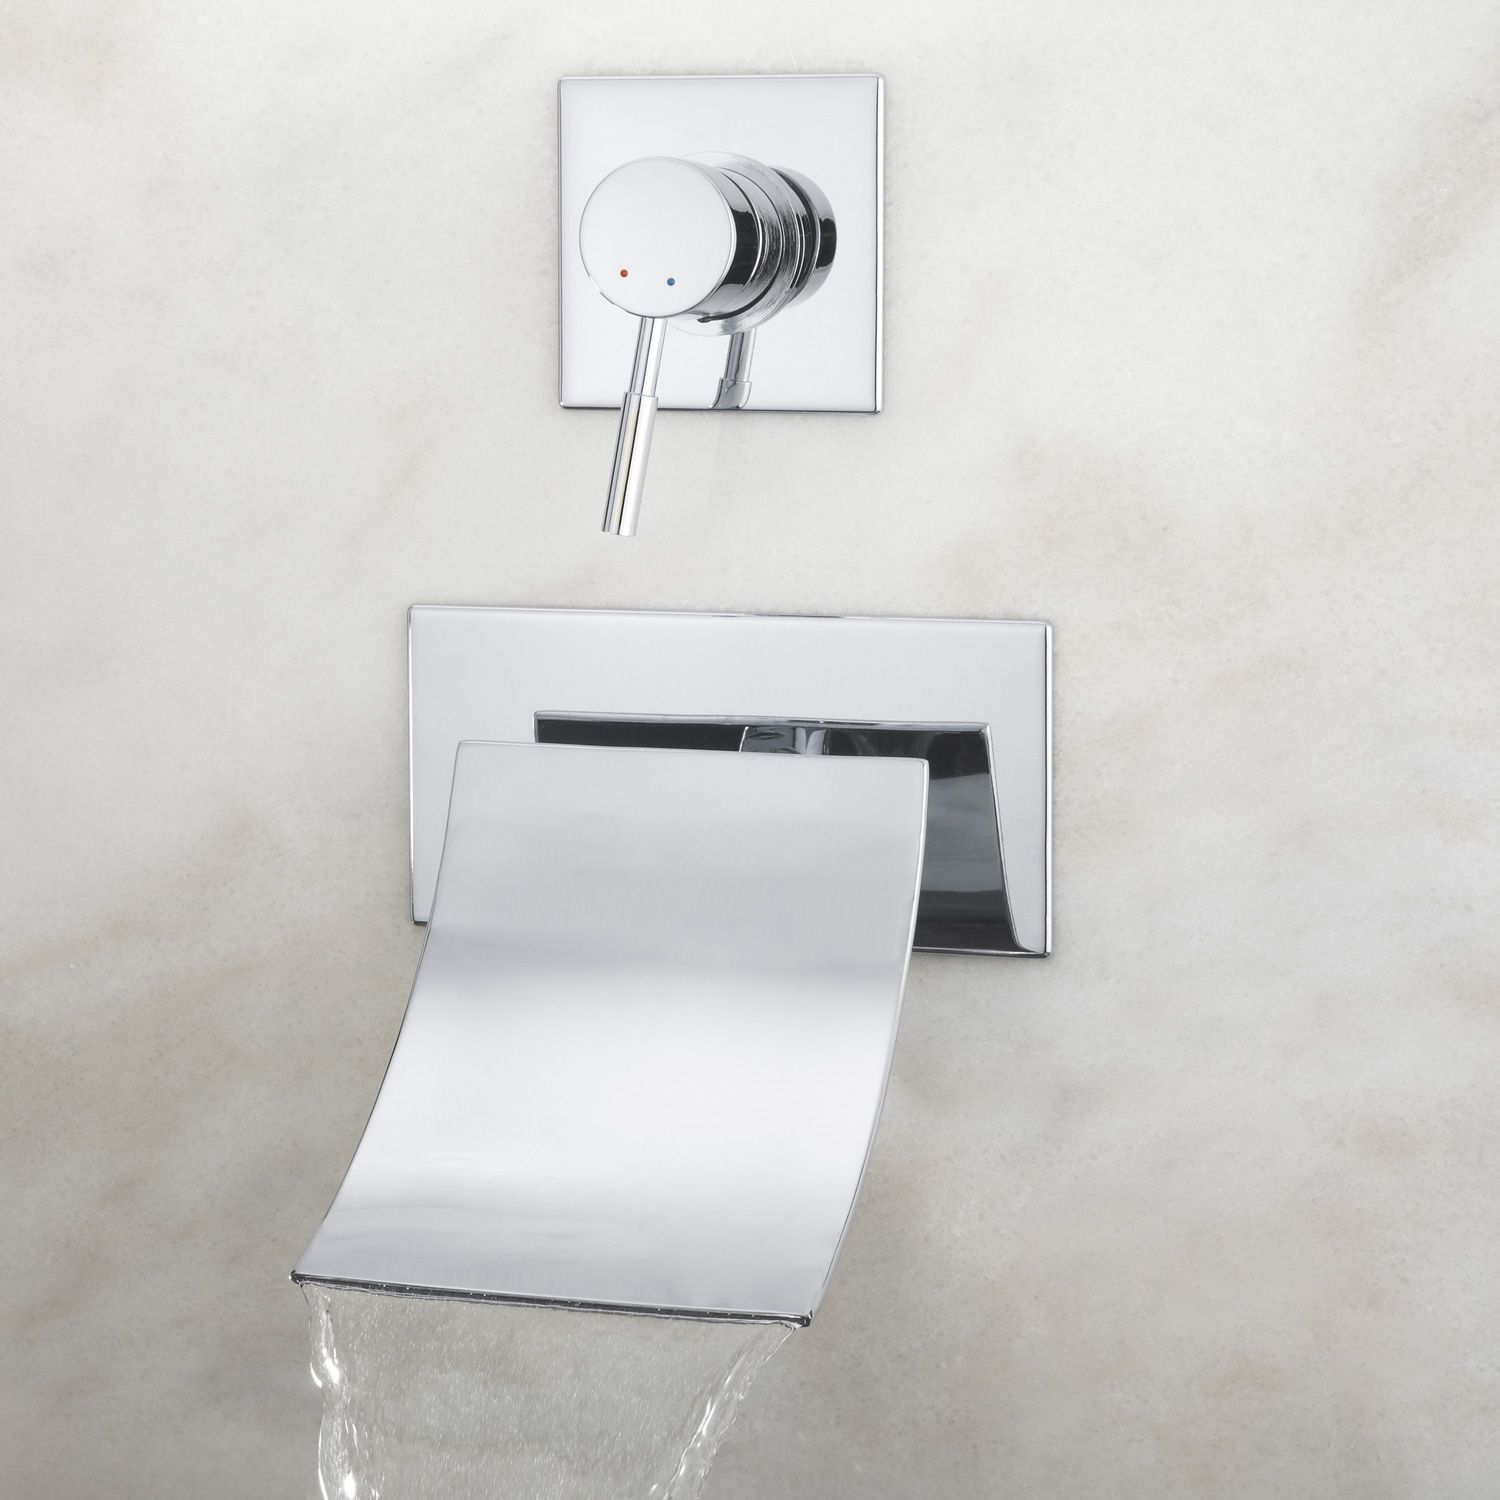 Reston Wall Mount Tub Faucet with Waterfall Spout